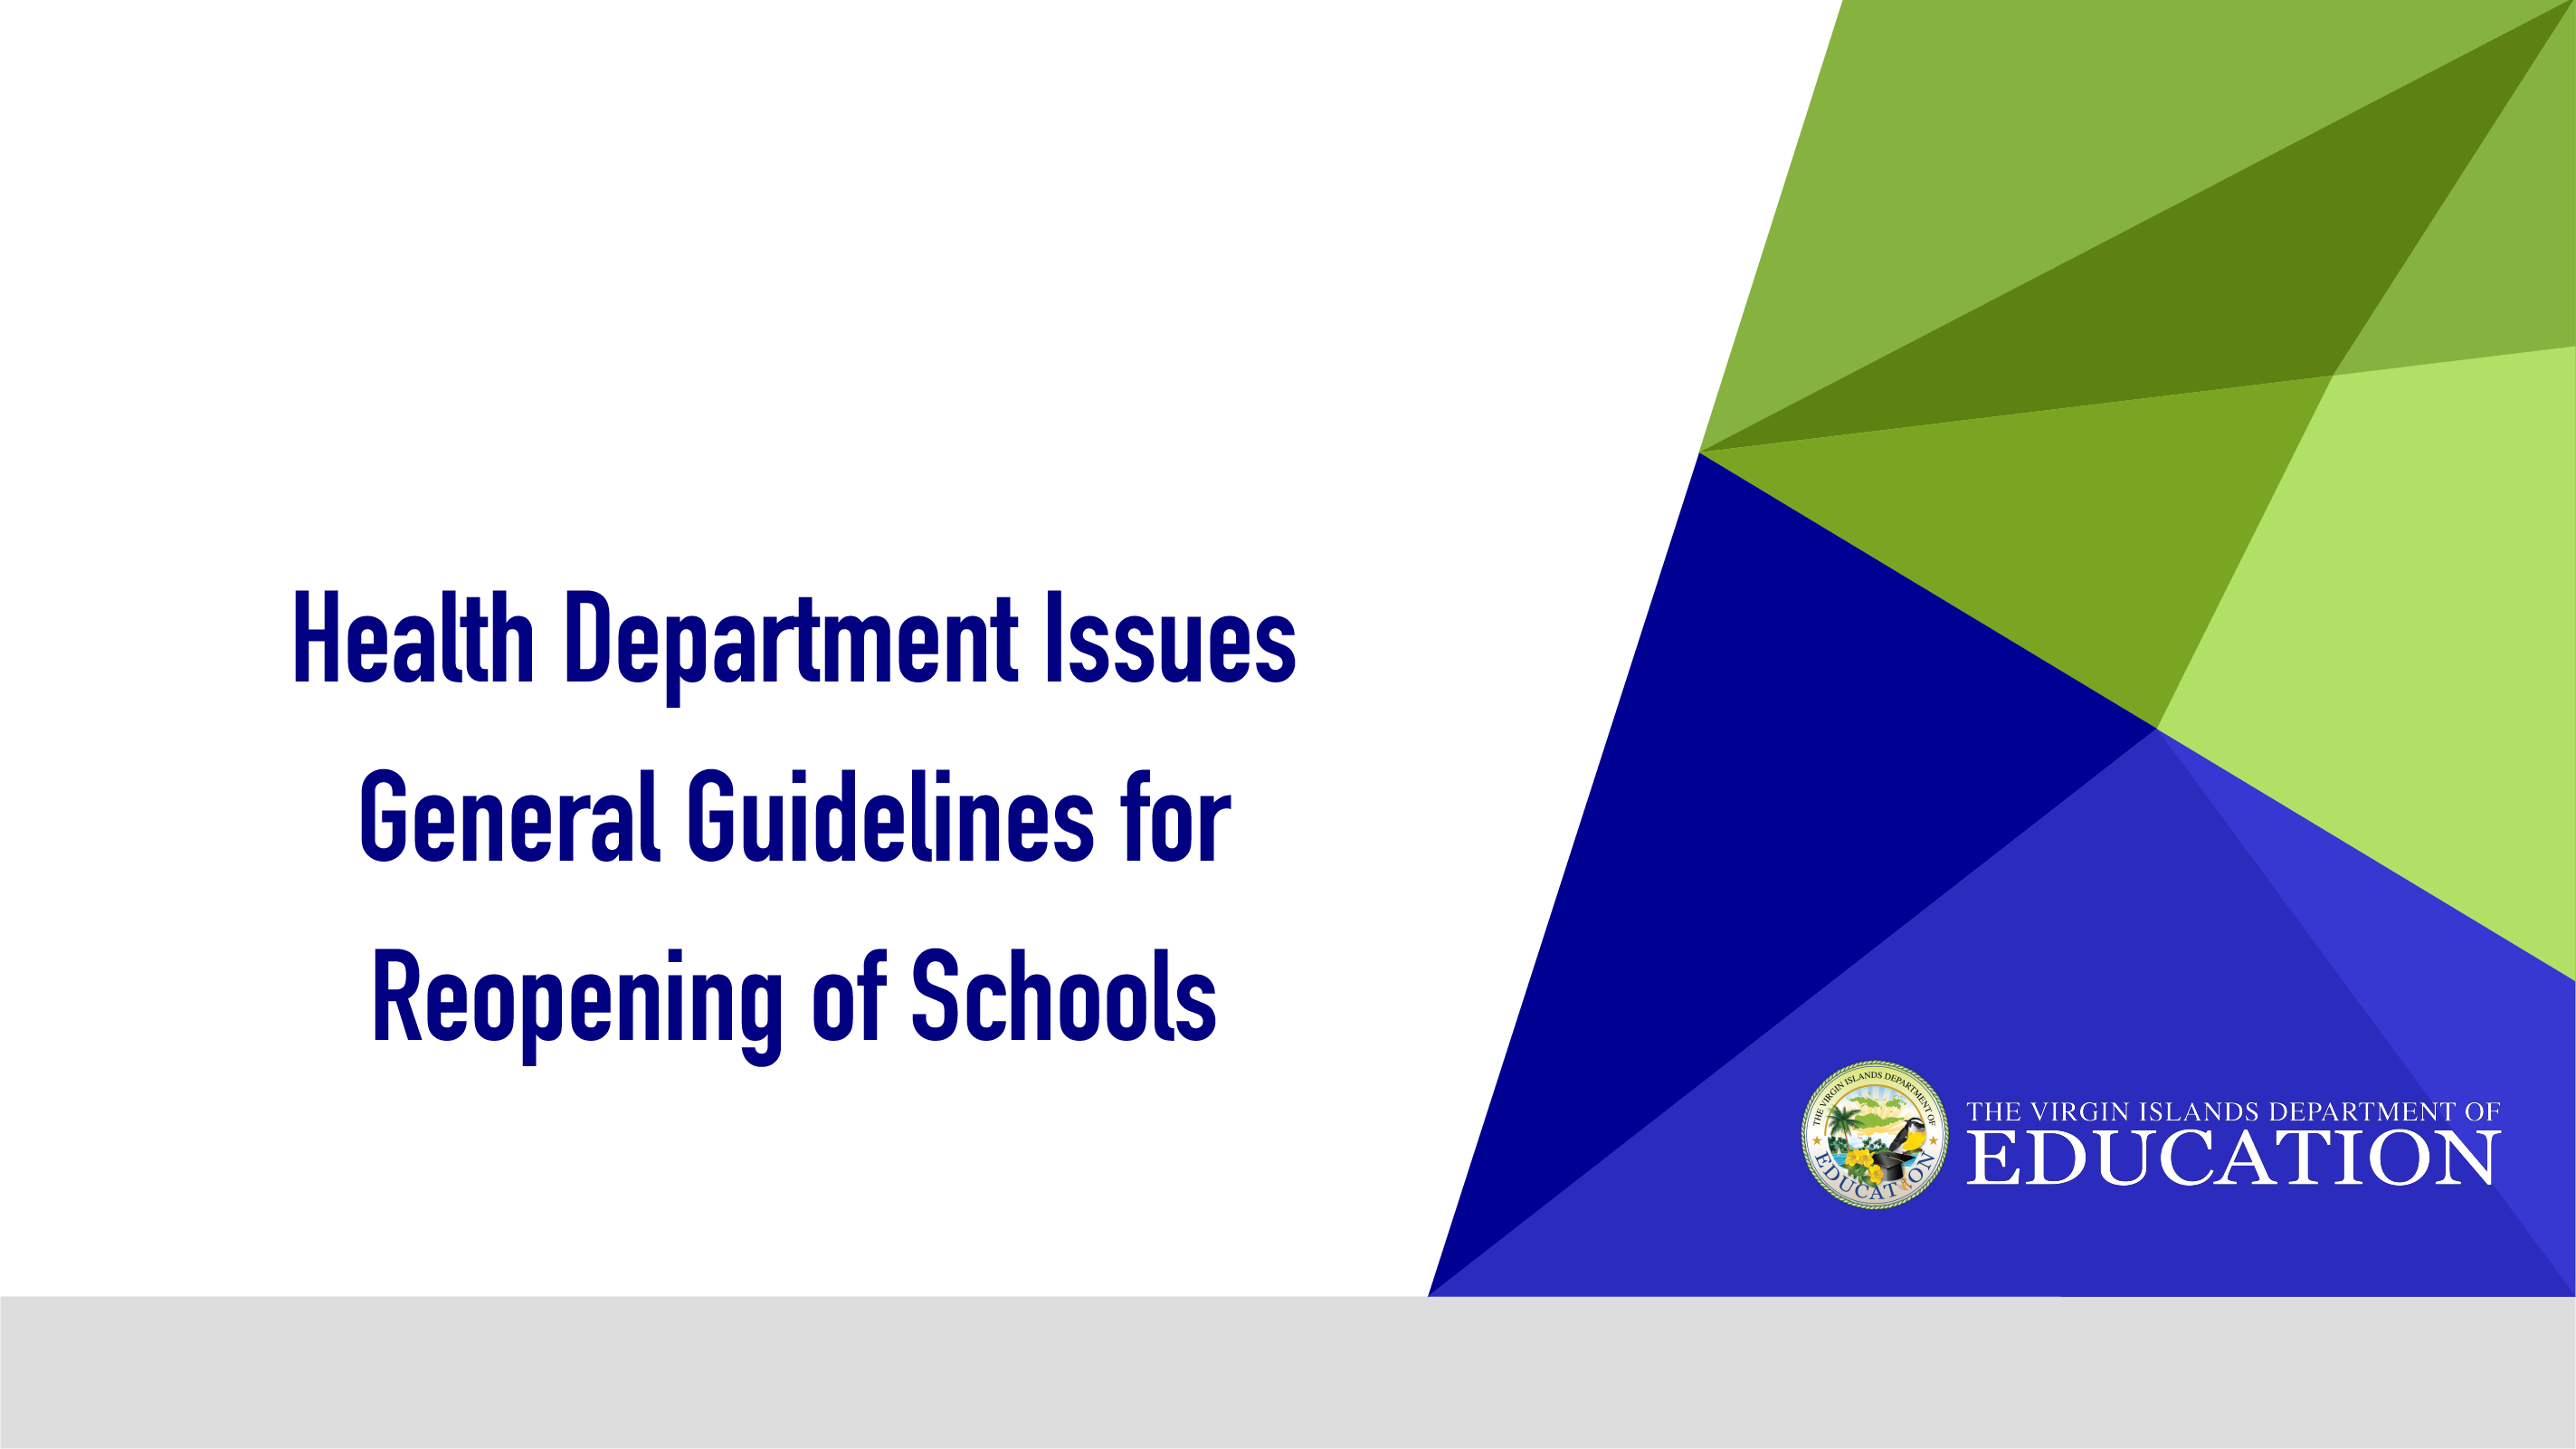 Health Department Issues General Guidelines for Reopening of Schools 2020-2021